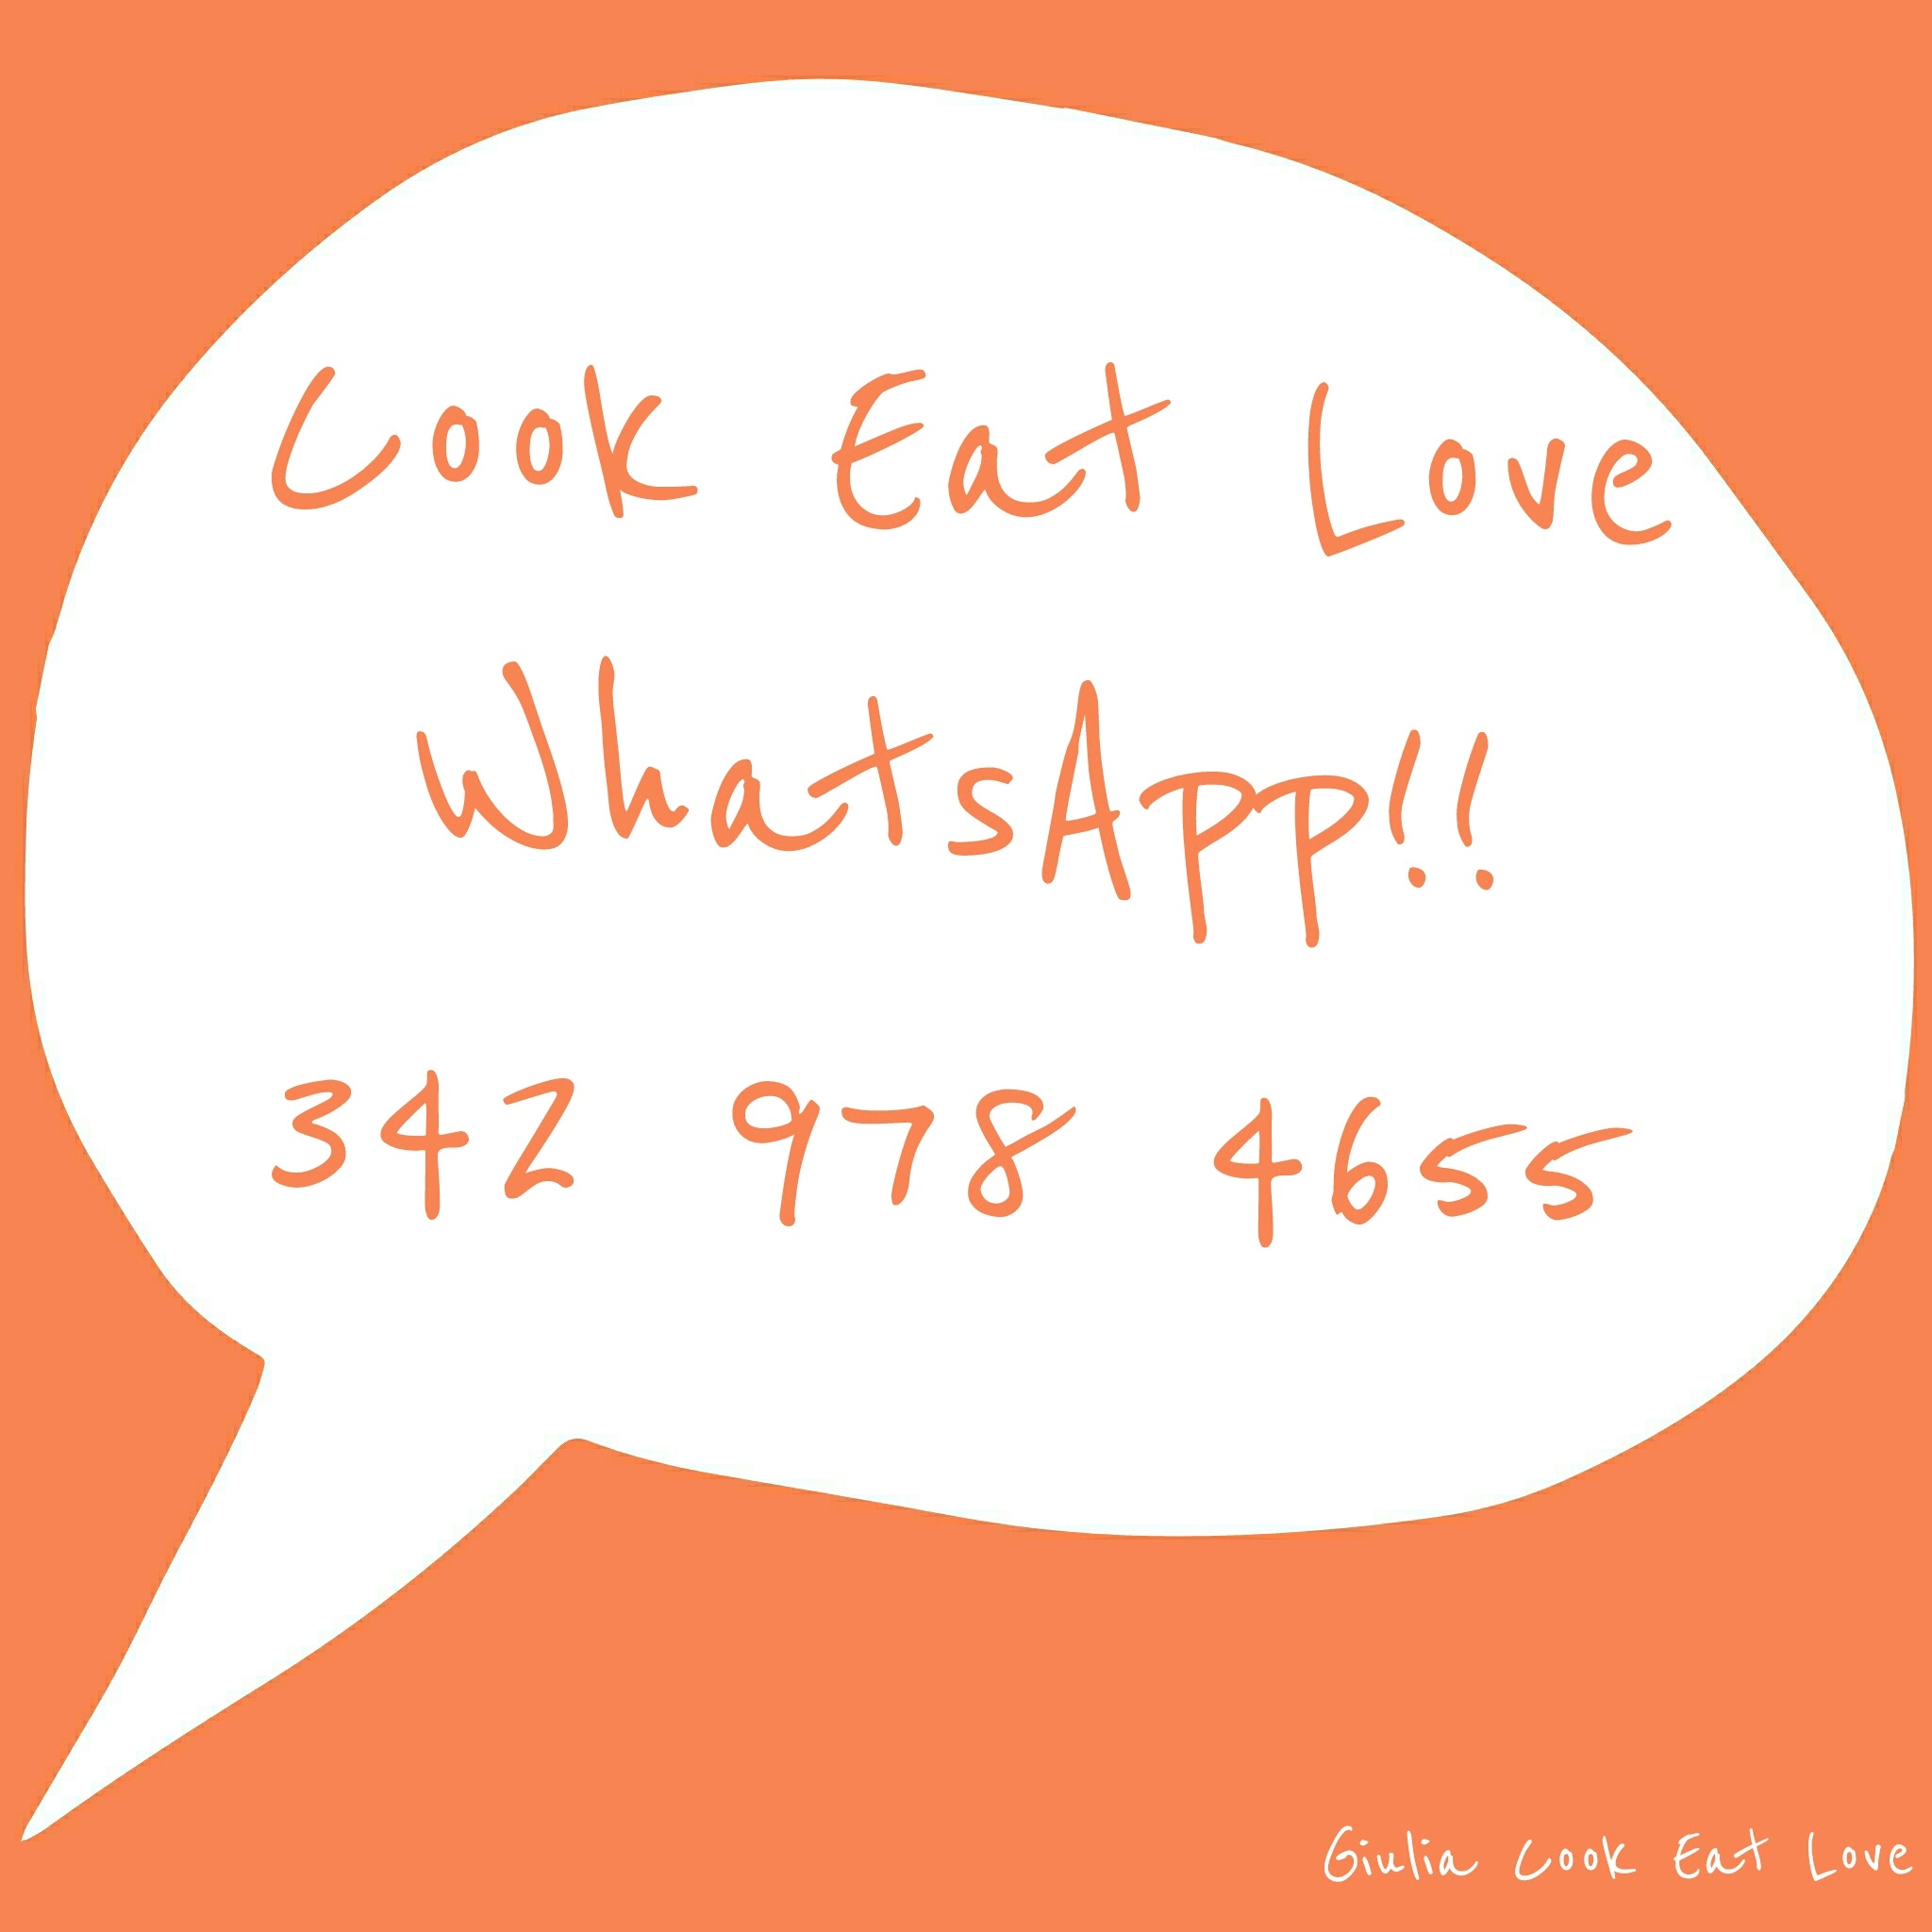 Cook Eat Love & WhatsApp